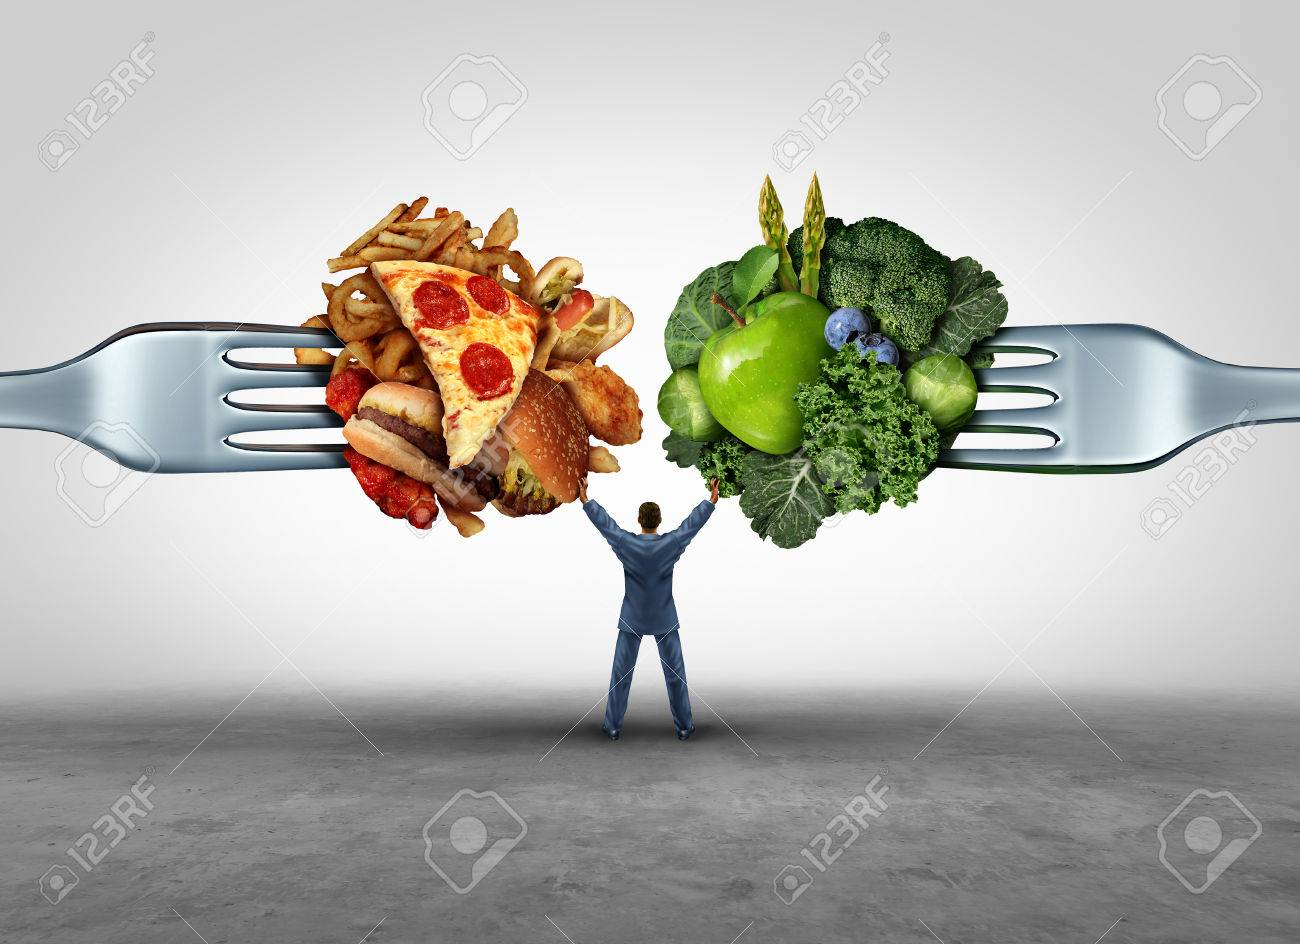 Food health decision and diet choice concept and nutrition options dilemma between healthy good fresh fruit and vegetables or greasy cholesterol rich fast food on a fork with a man in the middle uncertain of what to eat. - 51757312